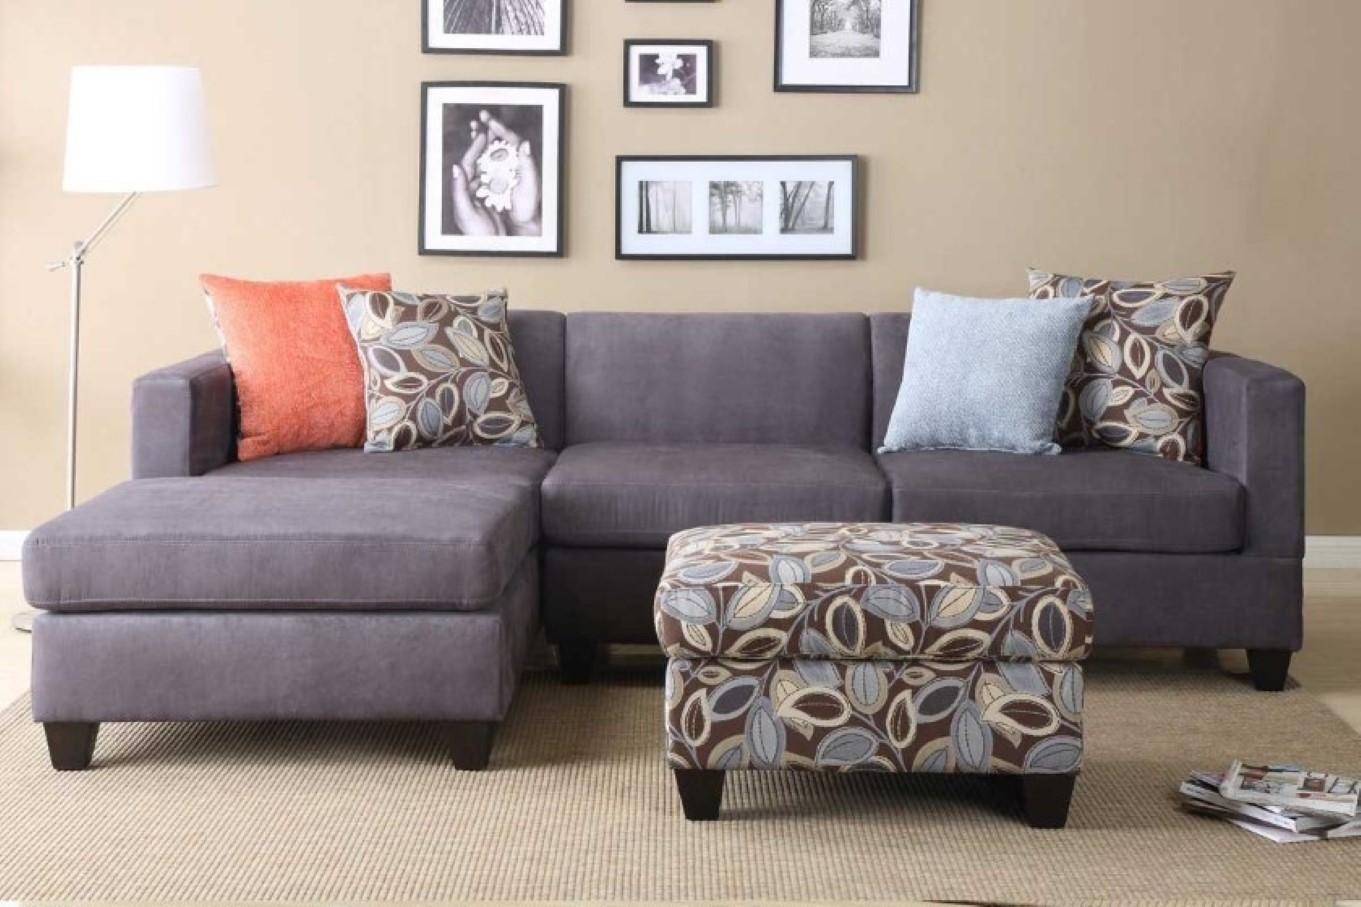 3 Piece Sectional Sleeper Sofa – Ansugallery With Regard To 3 Piece Sectional Sleeper Sofa (View 5 of 15)